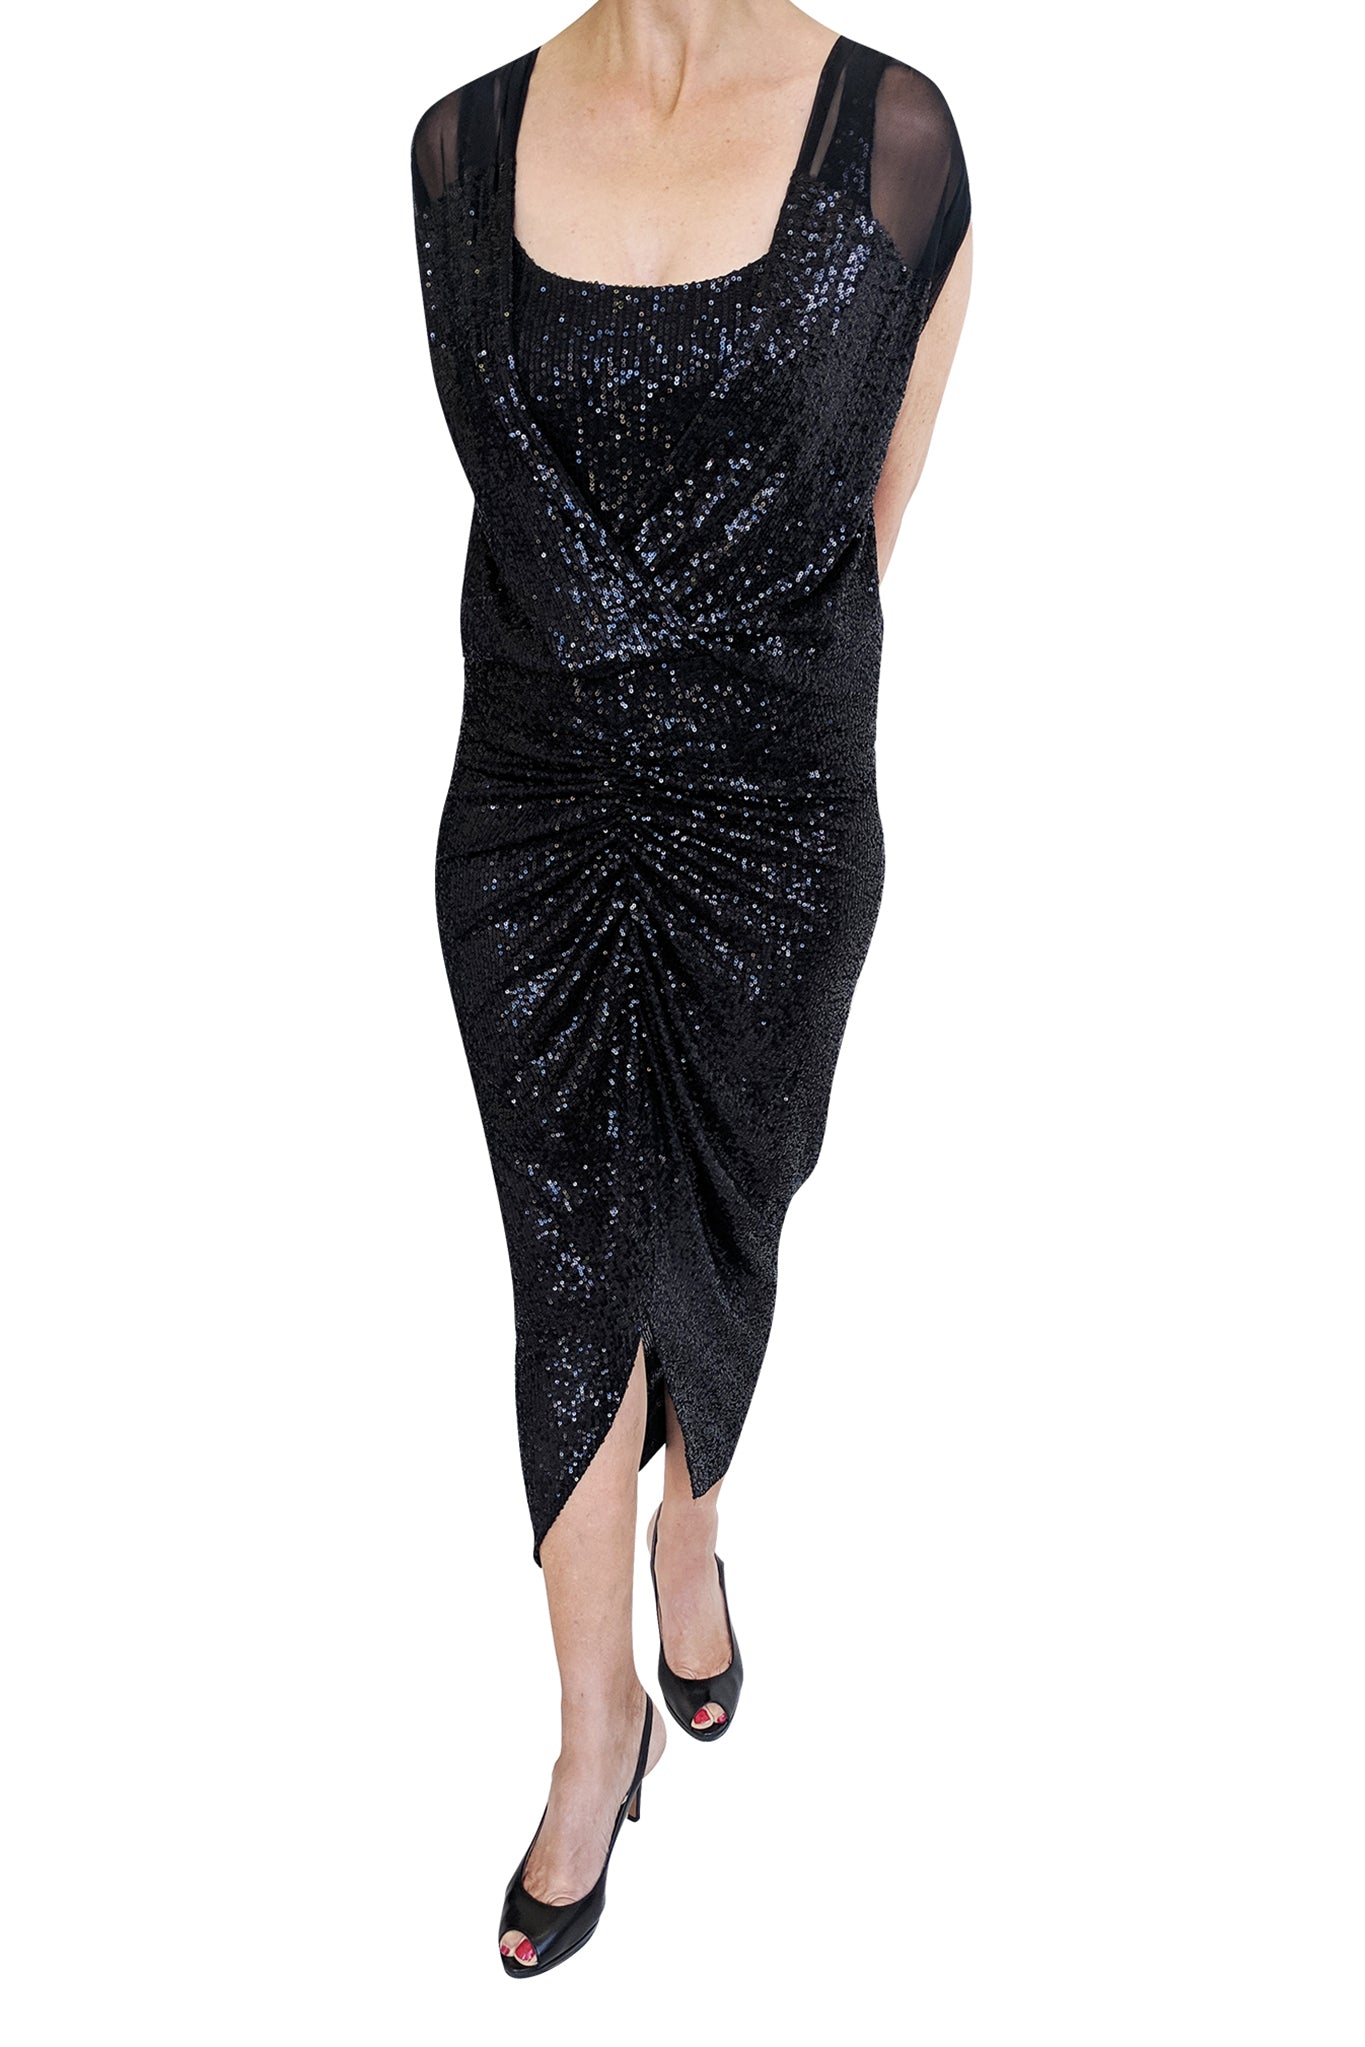 GaGa Dress, Black